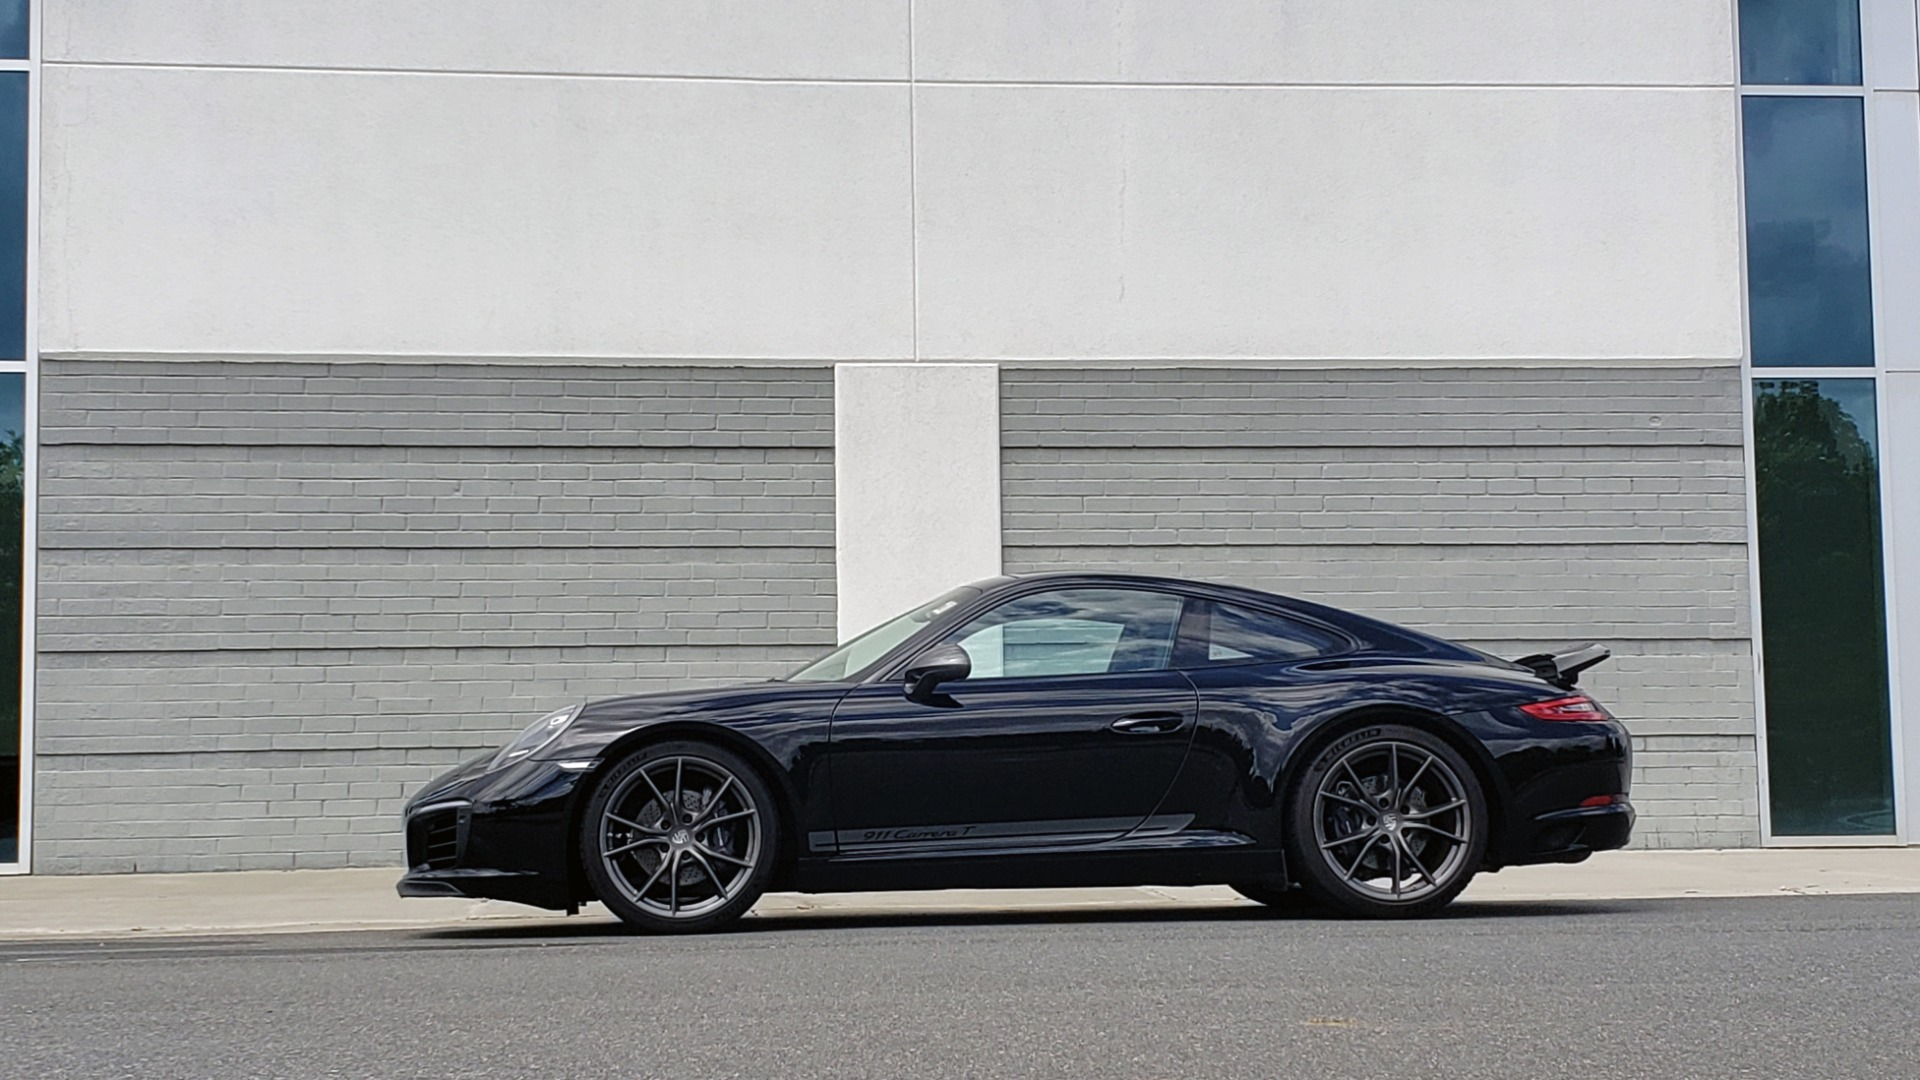 Used 2019 Porsche 911 CARRERA T / 3.0L H6 / MANUAL / PREMIUM / NAV / BOSE / SUNROOF / REARVIEW for sale $117,000 at Formula Imports in Charlotte NC 28227 6